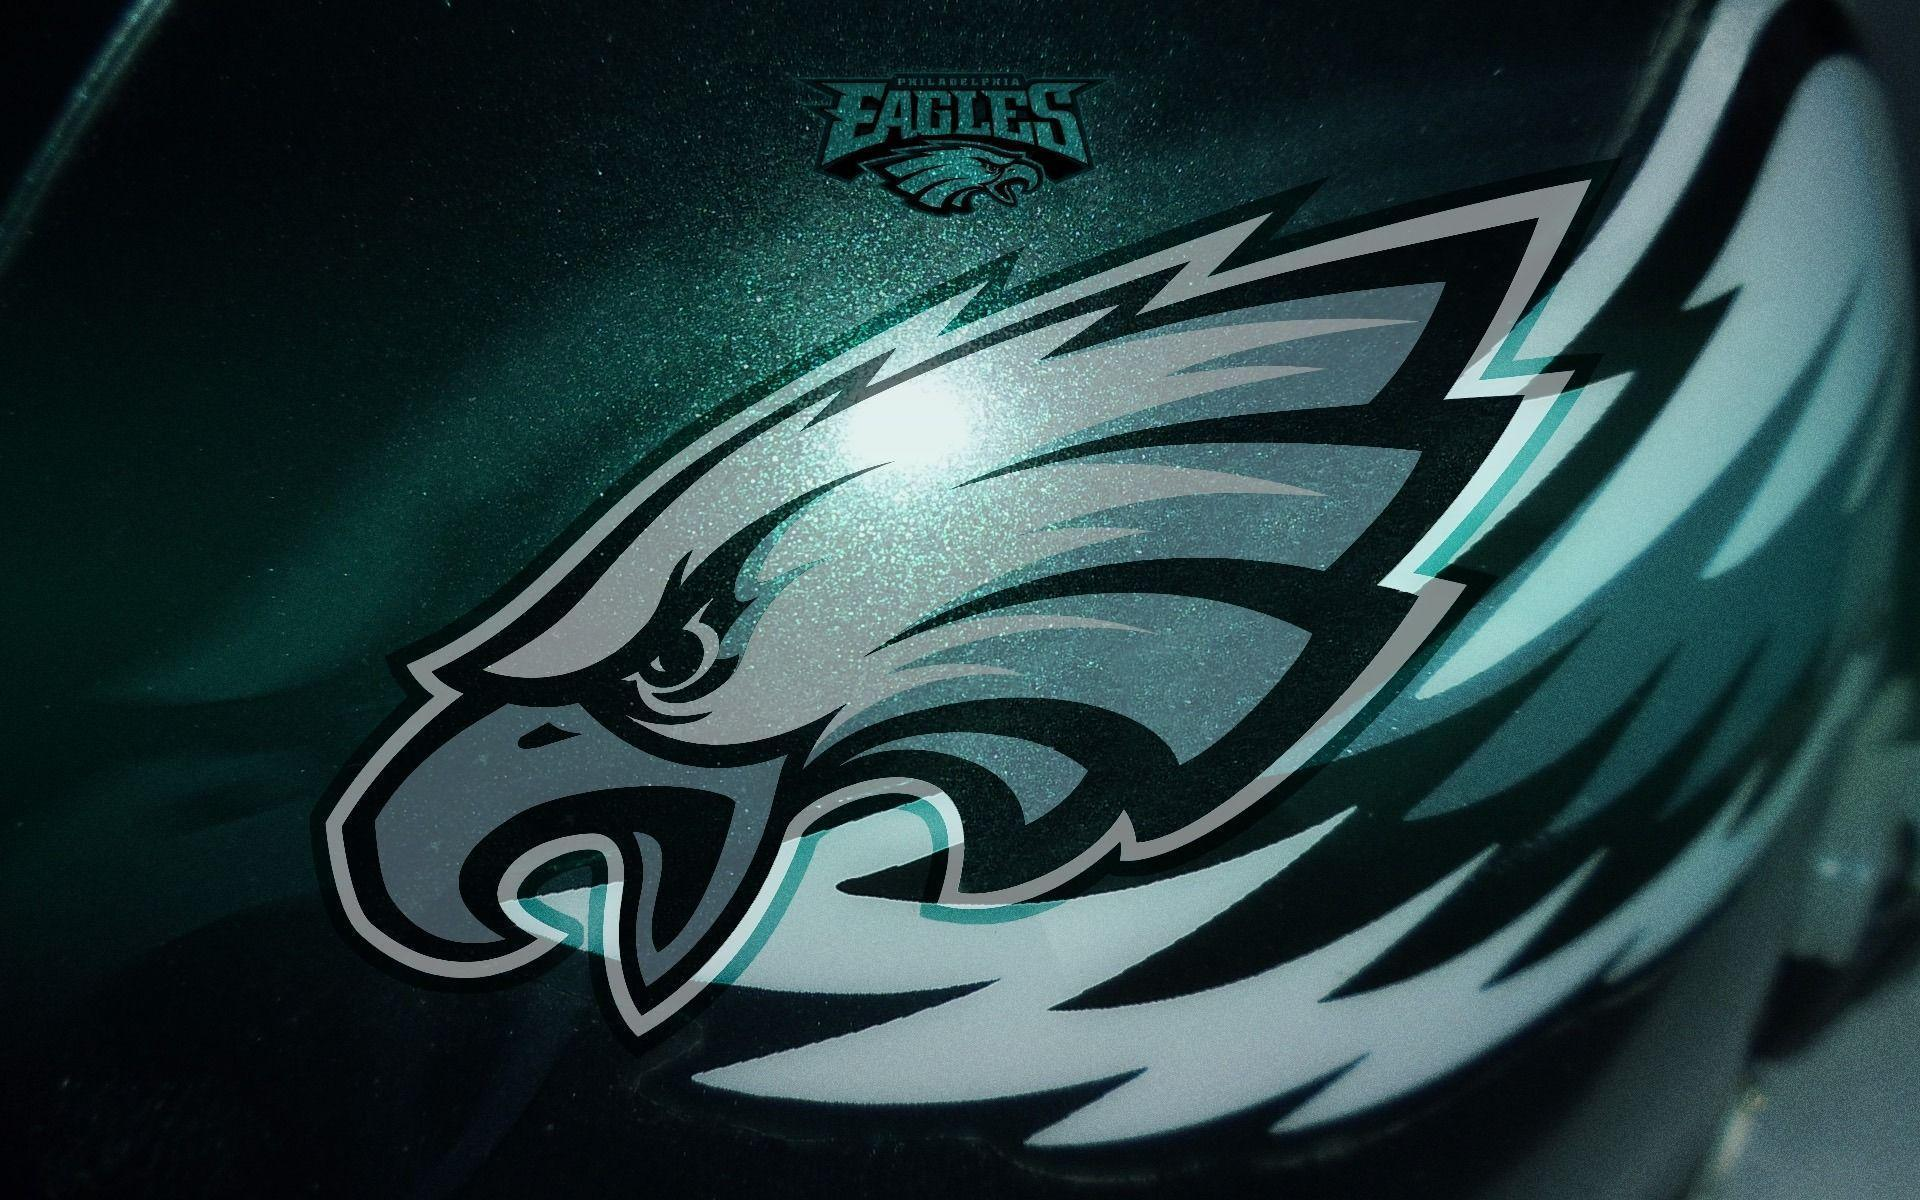 wallpaper eagles logo - photo #4